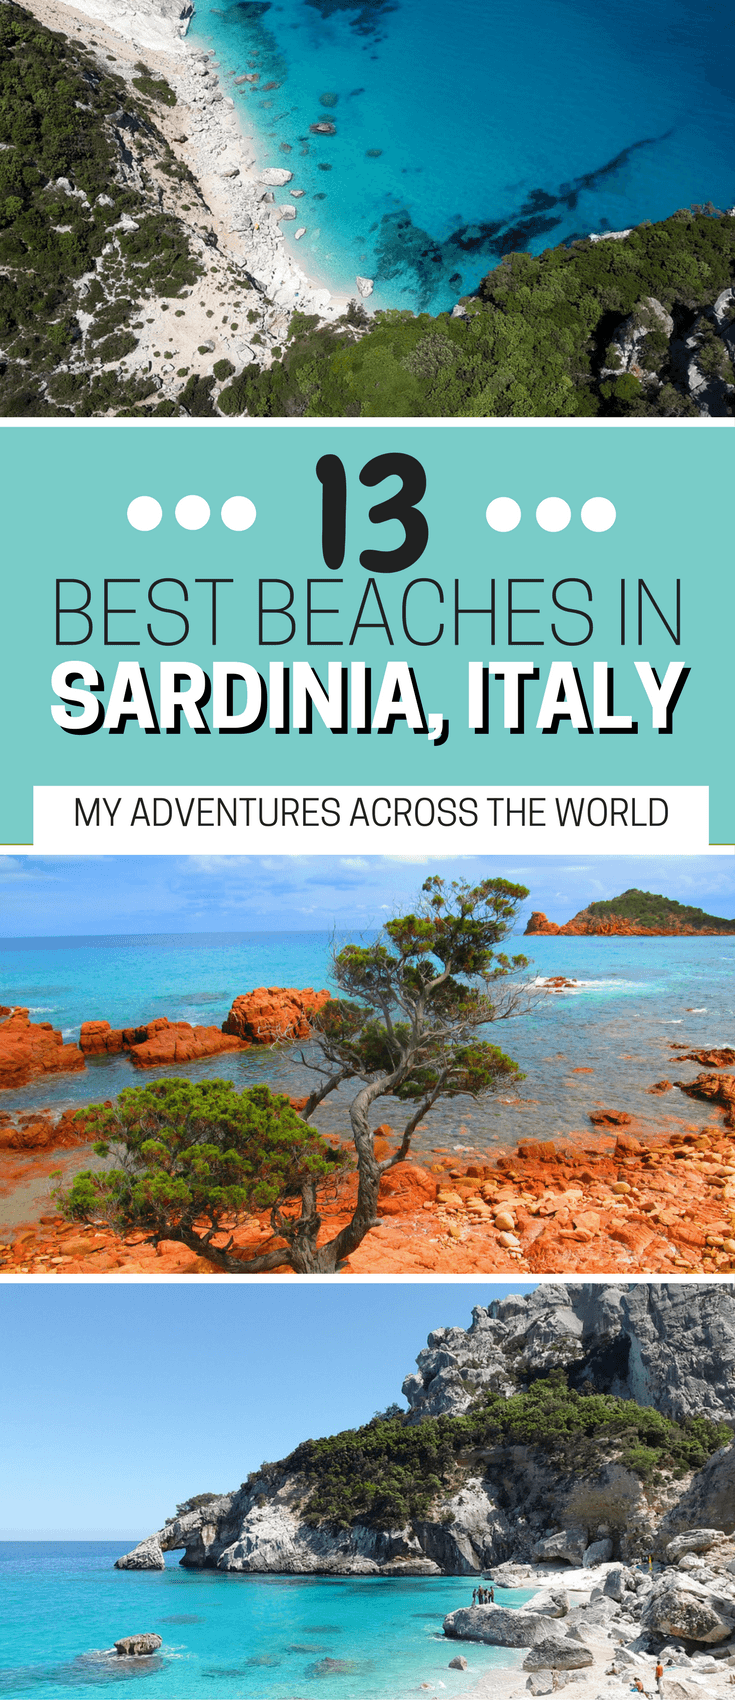 Discover the best beaches in Sardinia, Italy - via @clautavani